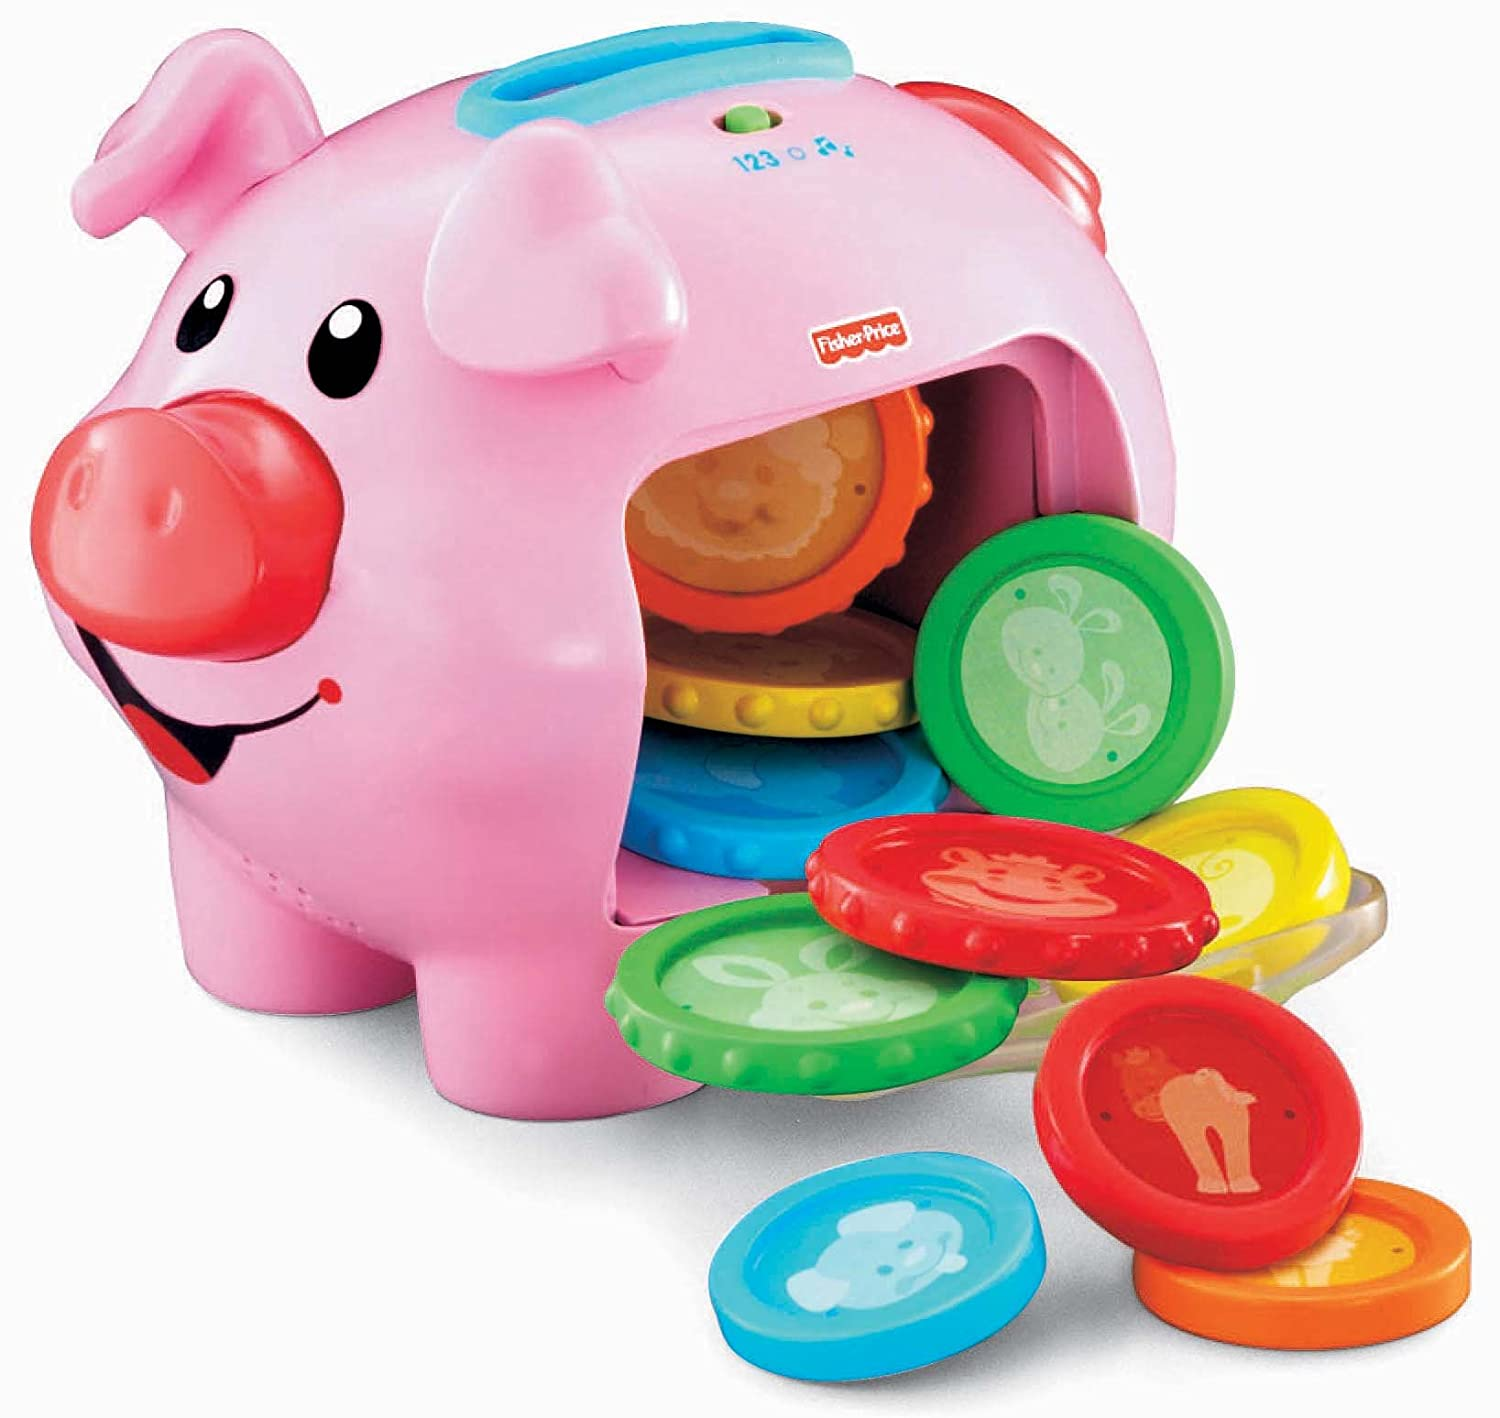 Fisher Price Laugh & Learn Learning Piggy Bank Amazon Toys